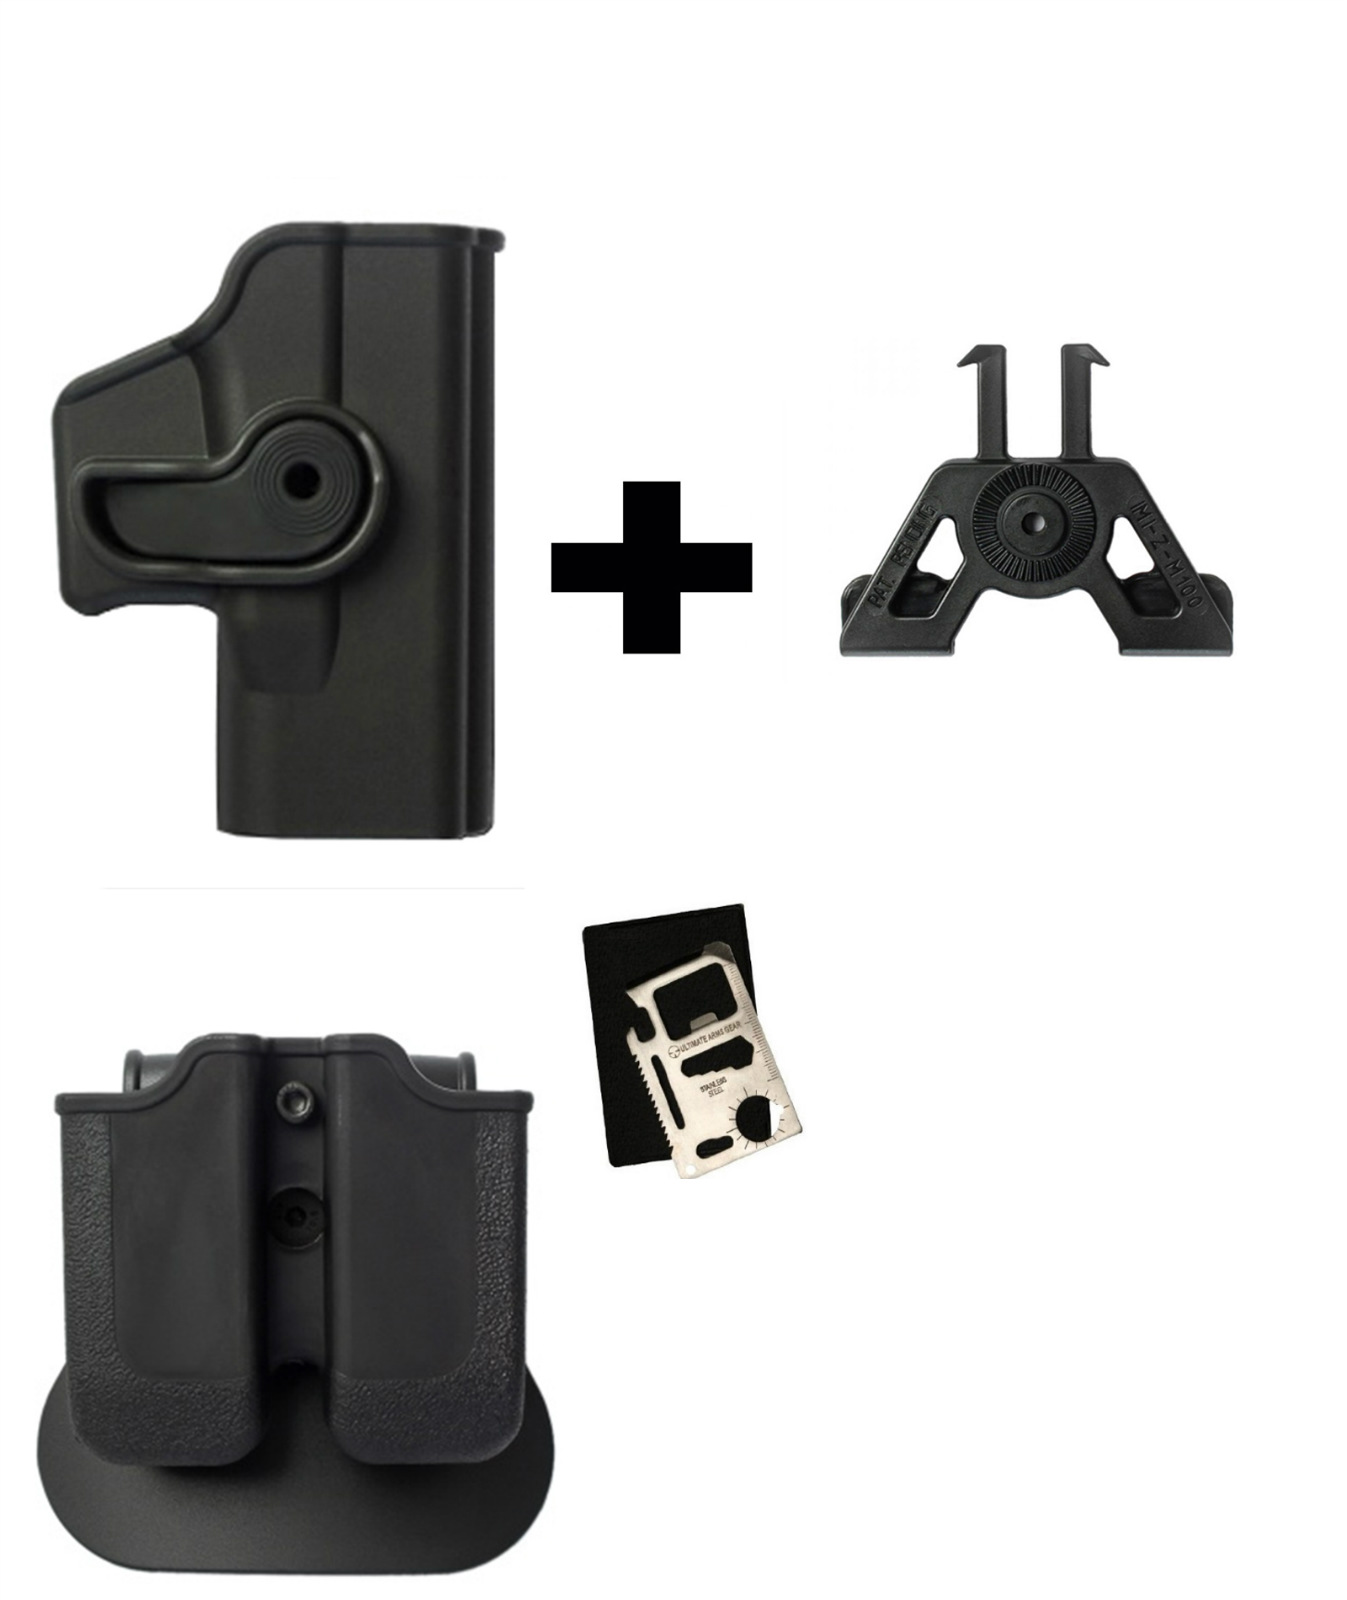 IMI Defense Z2000 MP00 Double Mag Holder & Paddle + Z1040 360� Rotate Holster Glock 23 26 27 28 33 36 Gen 4, Black +... by